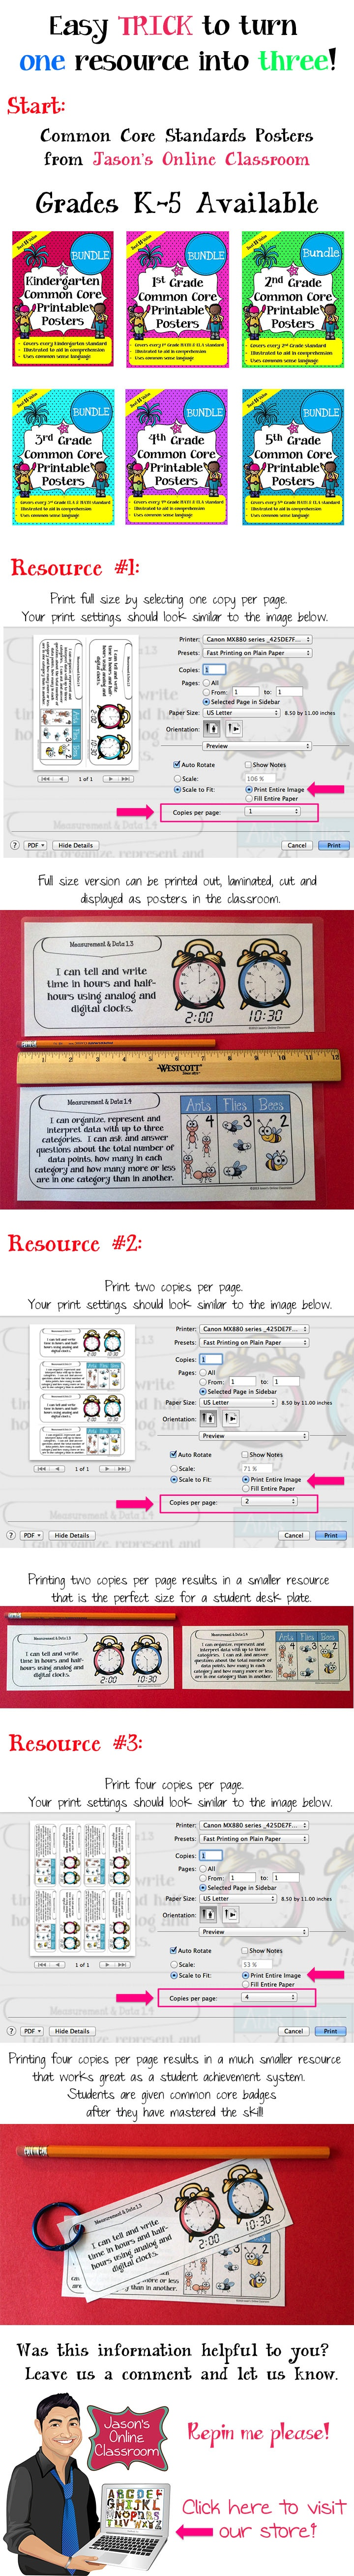 EXPAND (CLICK) THE PIN TO SEE THE FULL VERSION. Use this simple printing trick to make the most out of your resources. Buy one quality resource and turn it into 3 or more resources for your classroom needs!!  http://www.teacherspayteachers.com/Store/Jasons-Online-Classroom/Category/-Common-Core-Posters-